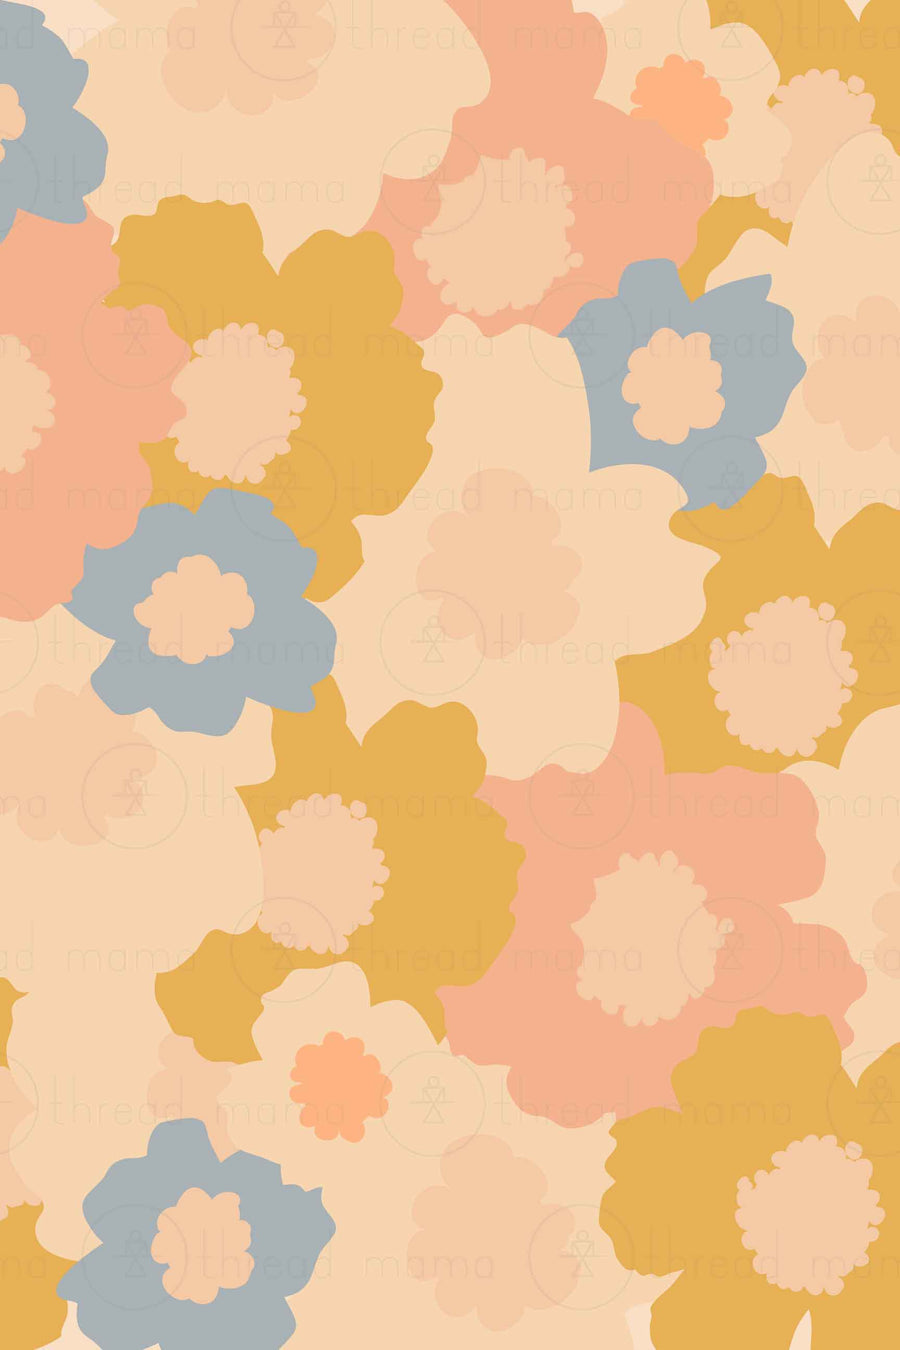 Repeating Pattern 53 (Seamless)